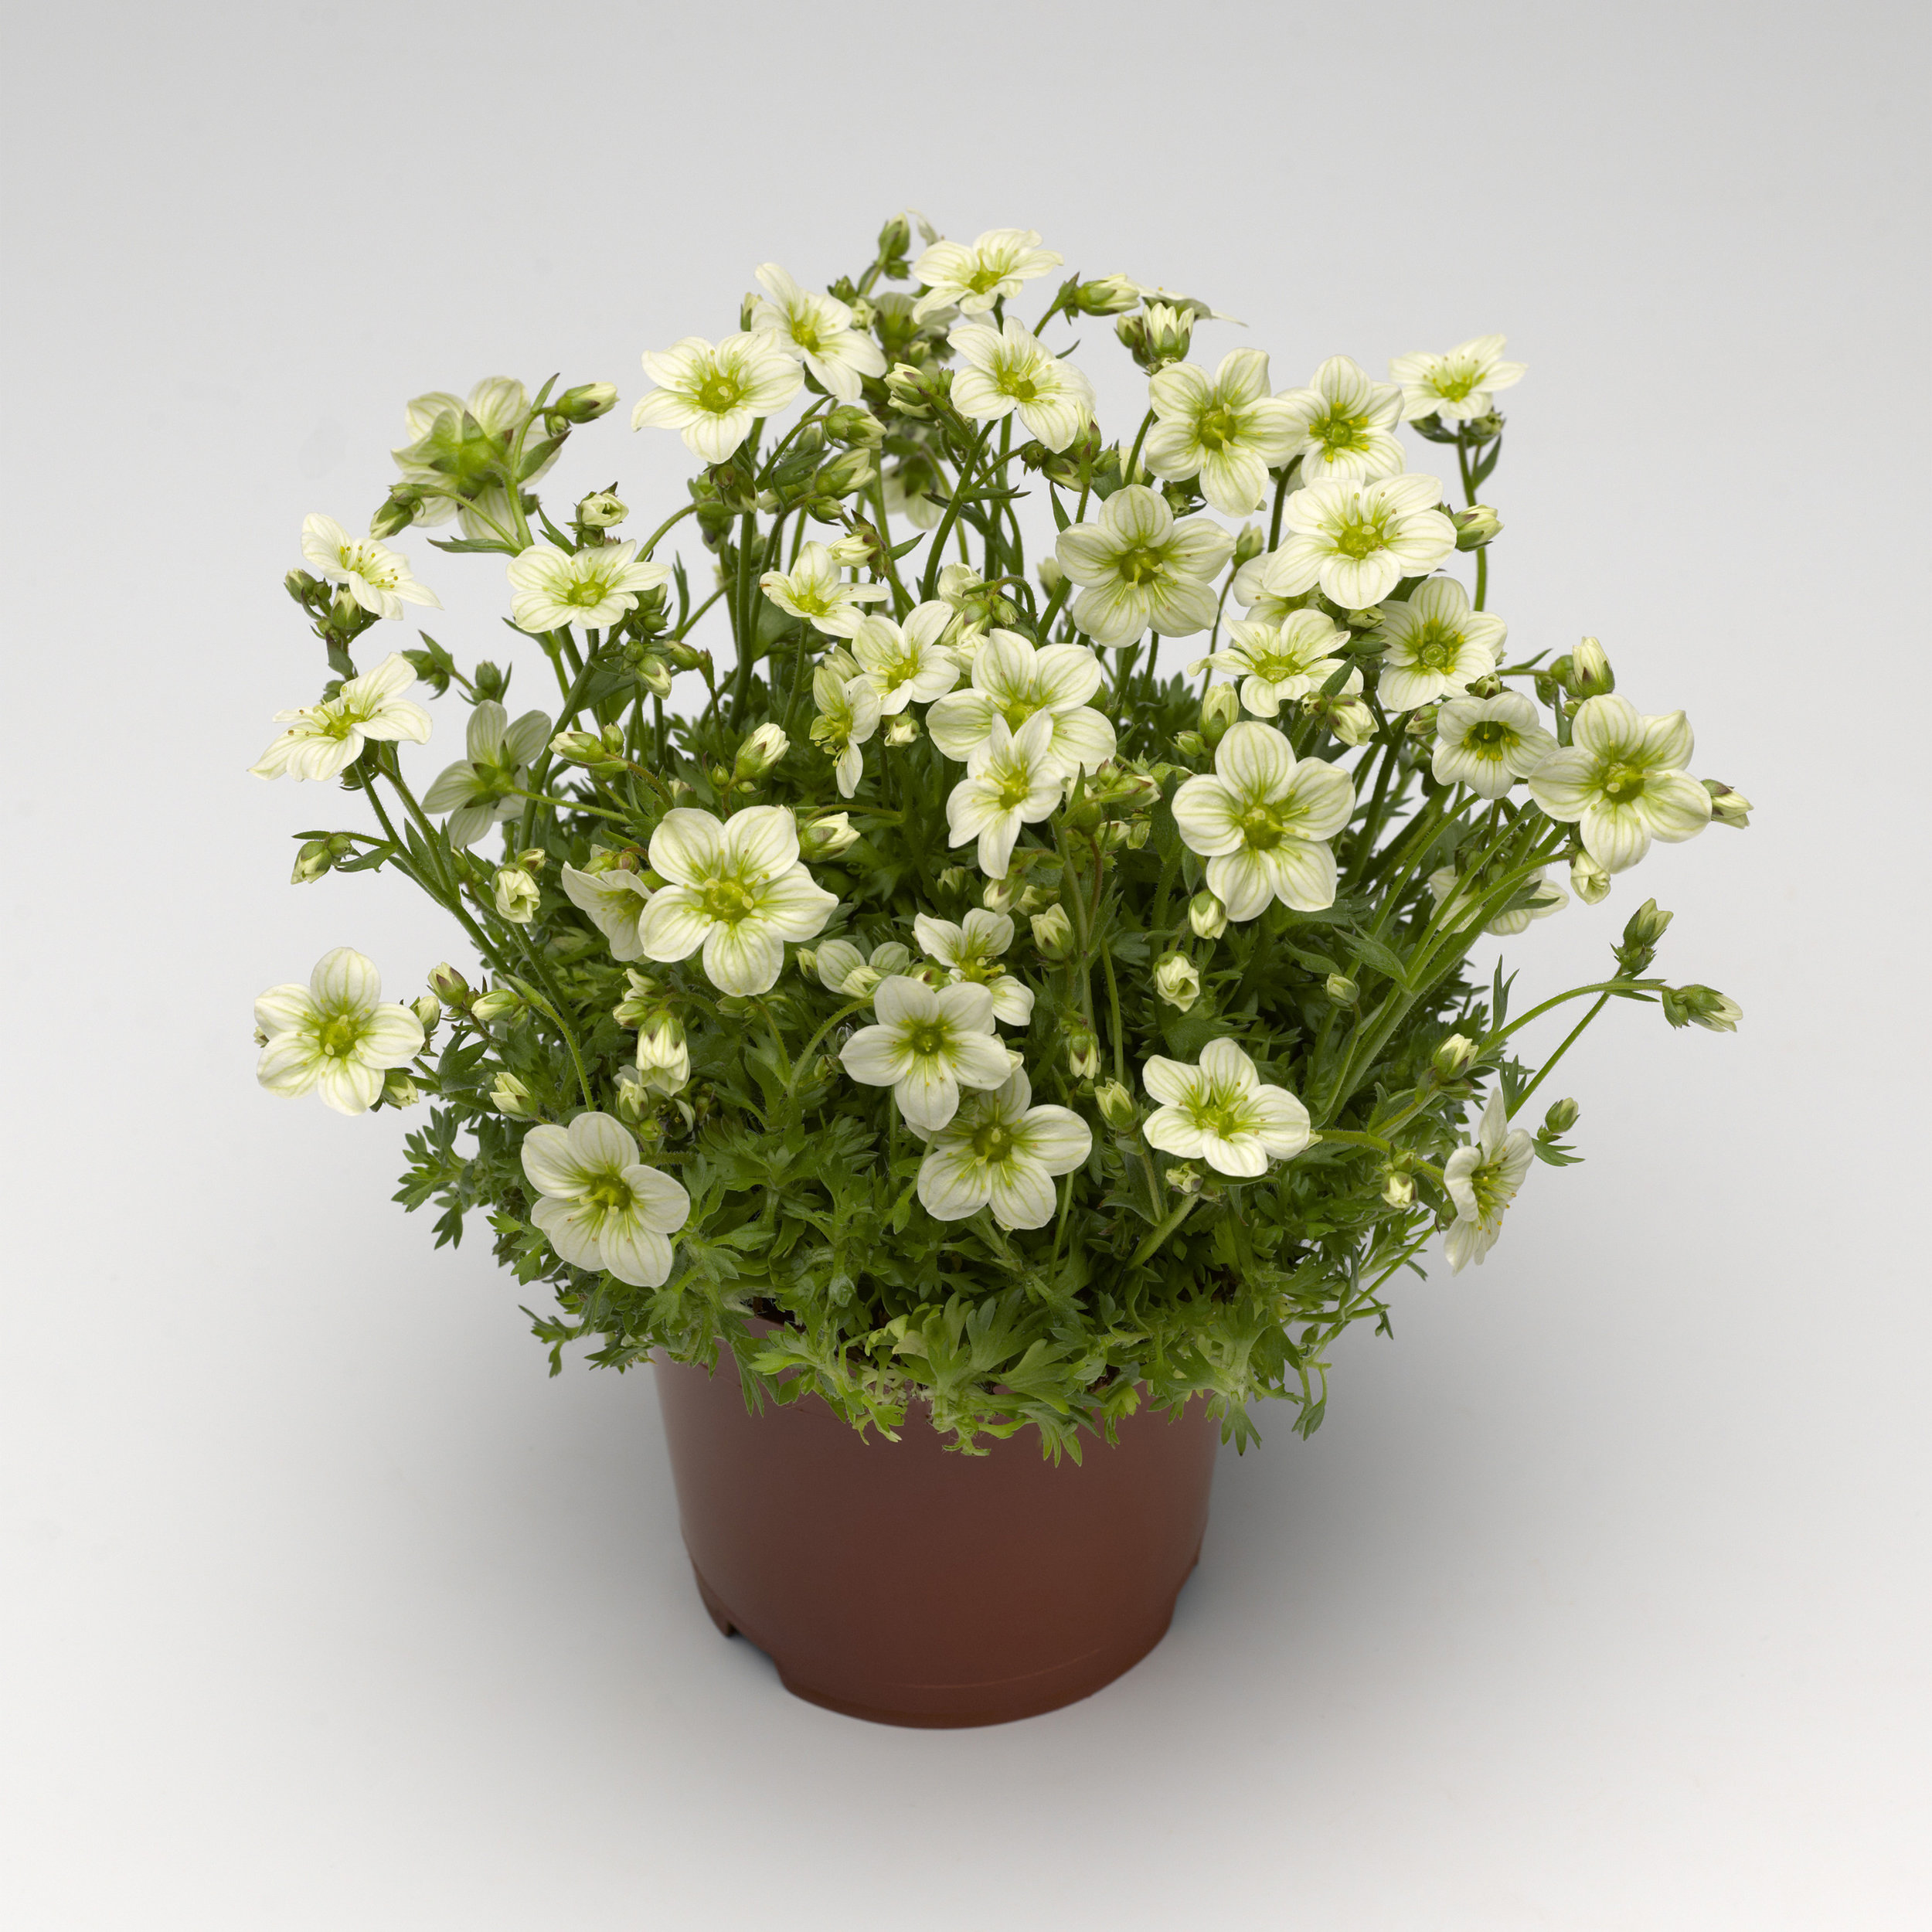 HR_Vegetative_Saxifraga_Alpino_Early™_Alpino_Early™_Lime_70020835_2.jpg